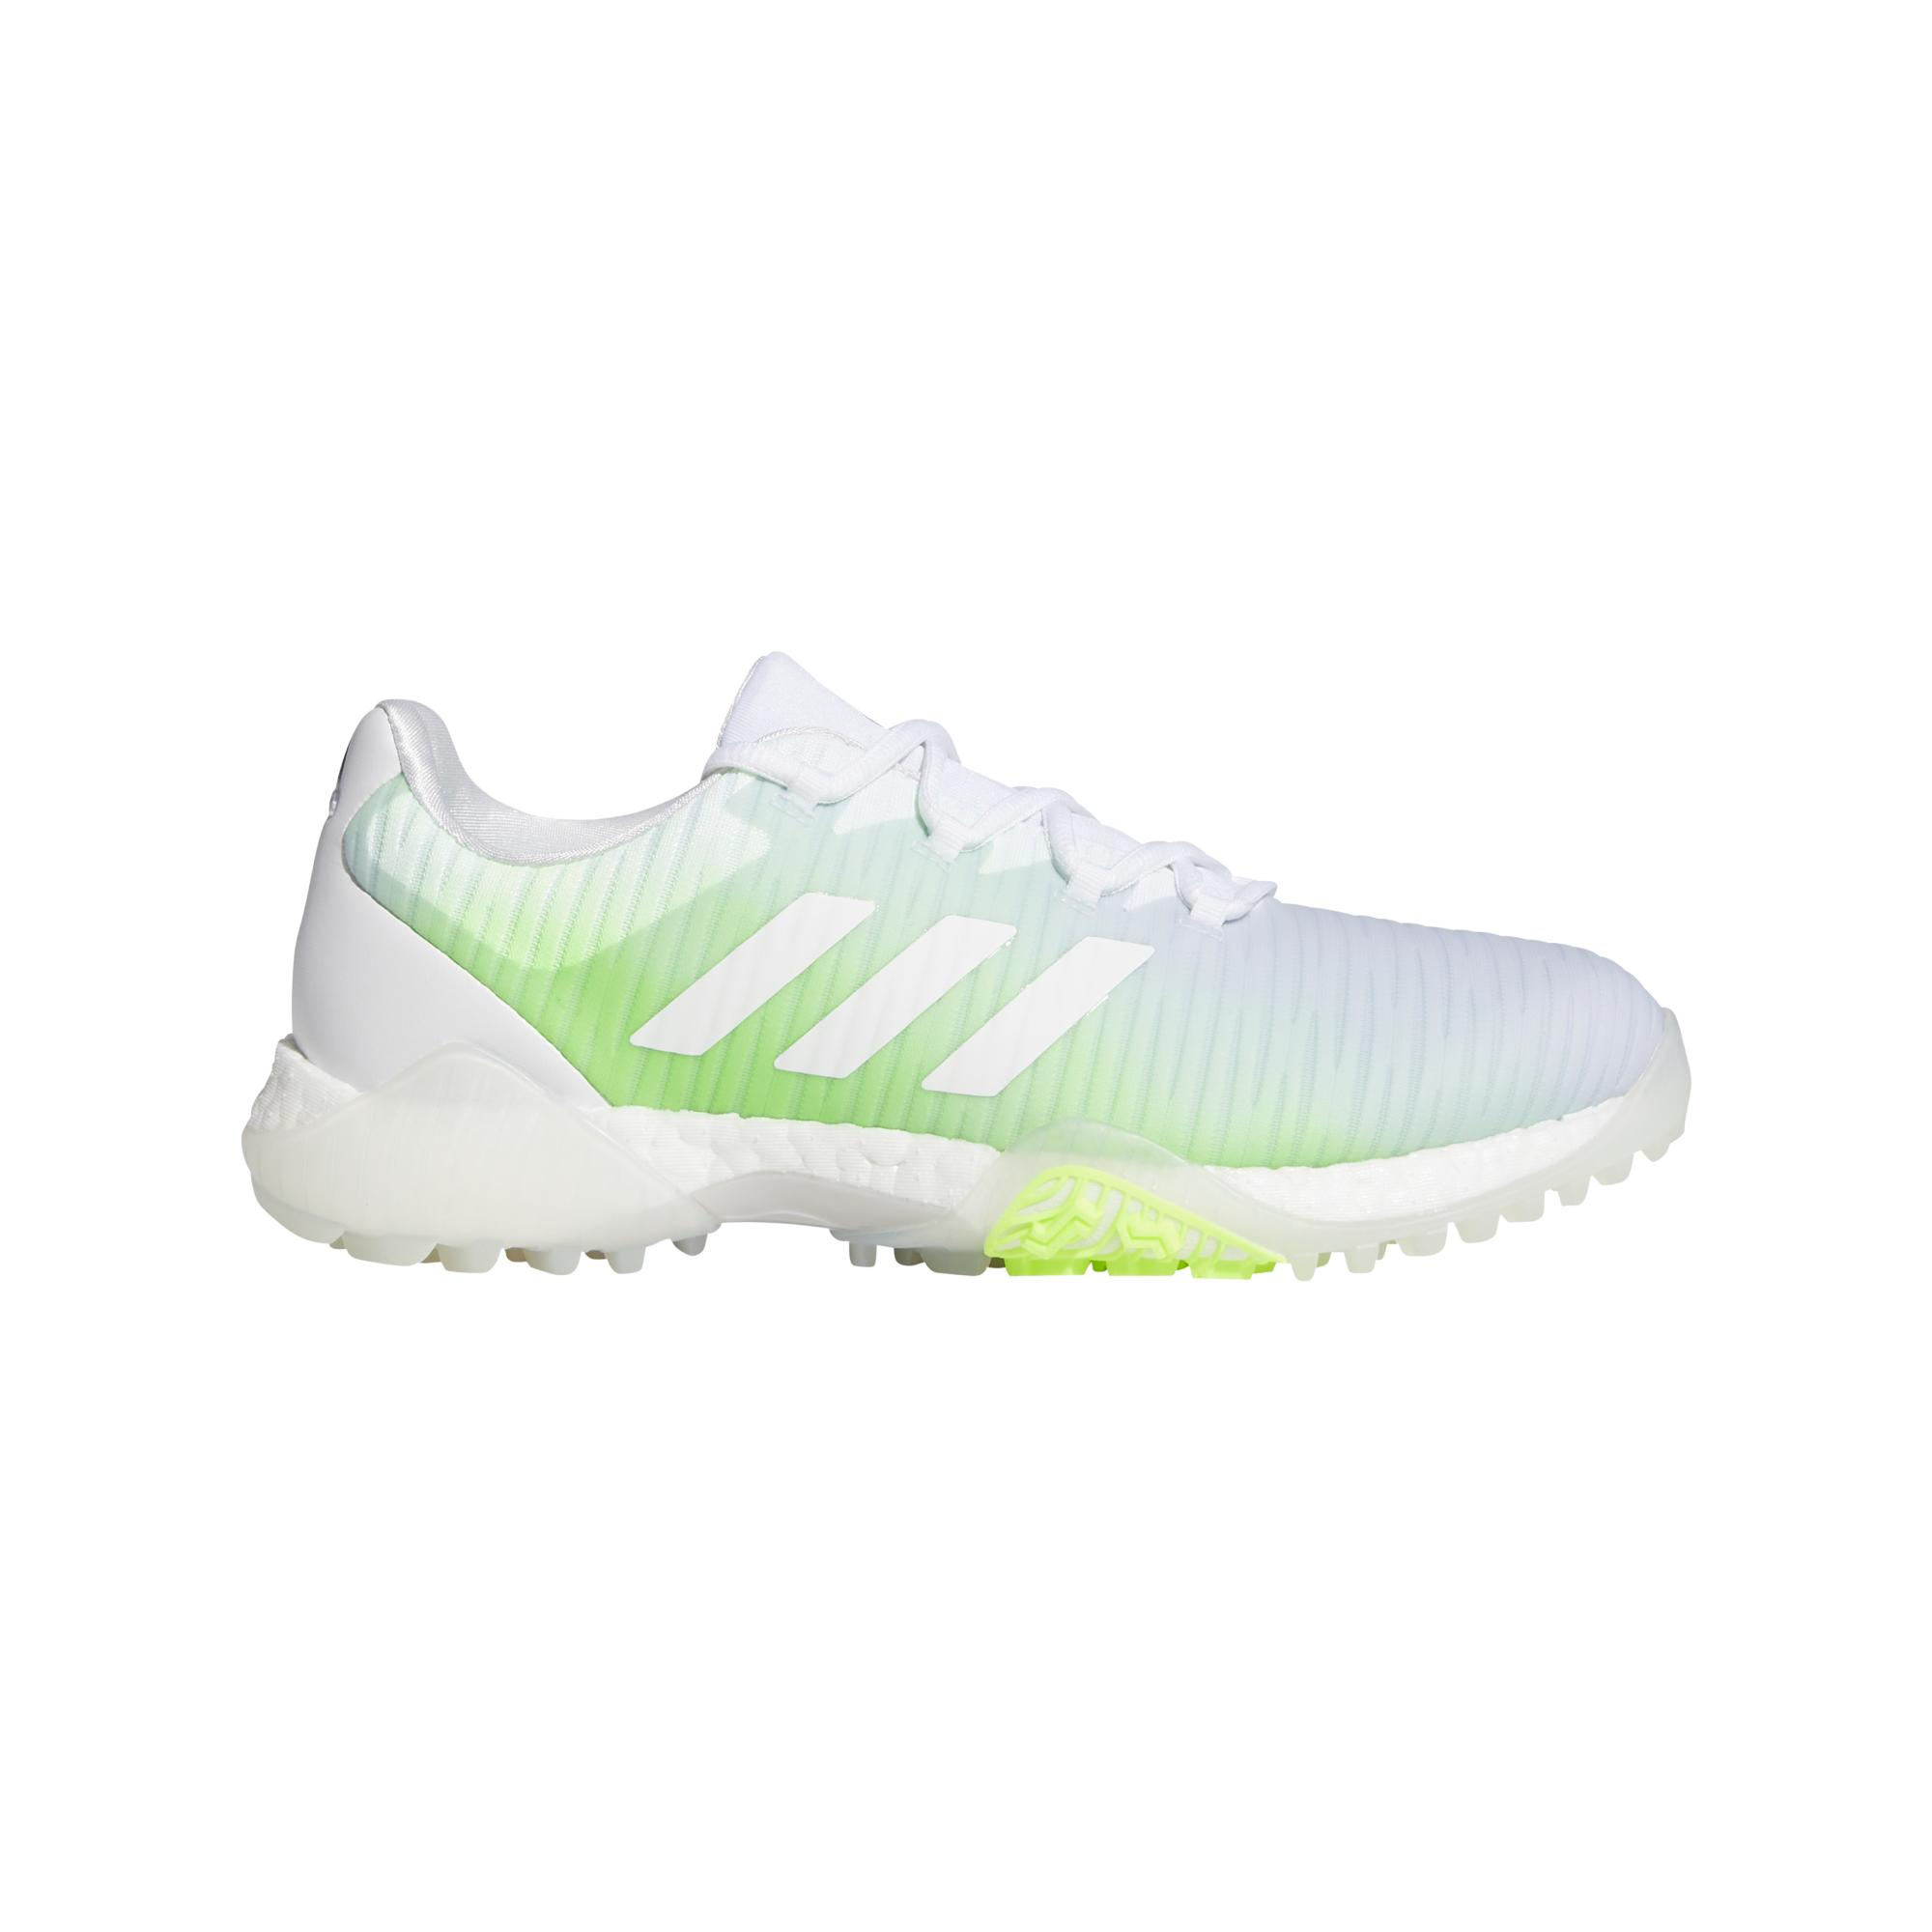 Women's CODECHAOS Spikeless Golf Shoe - White/Green